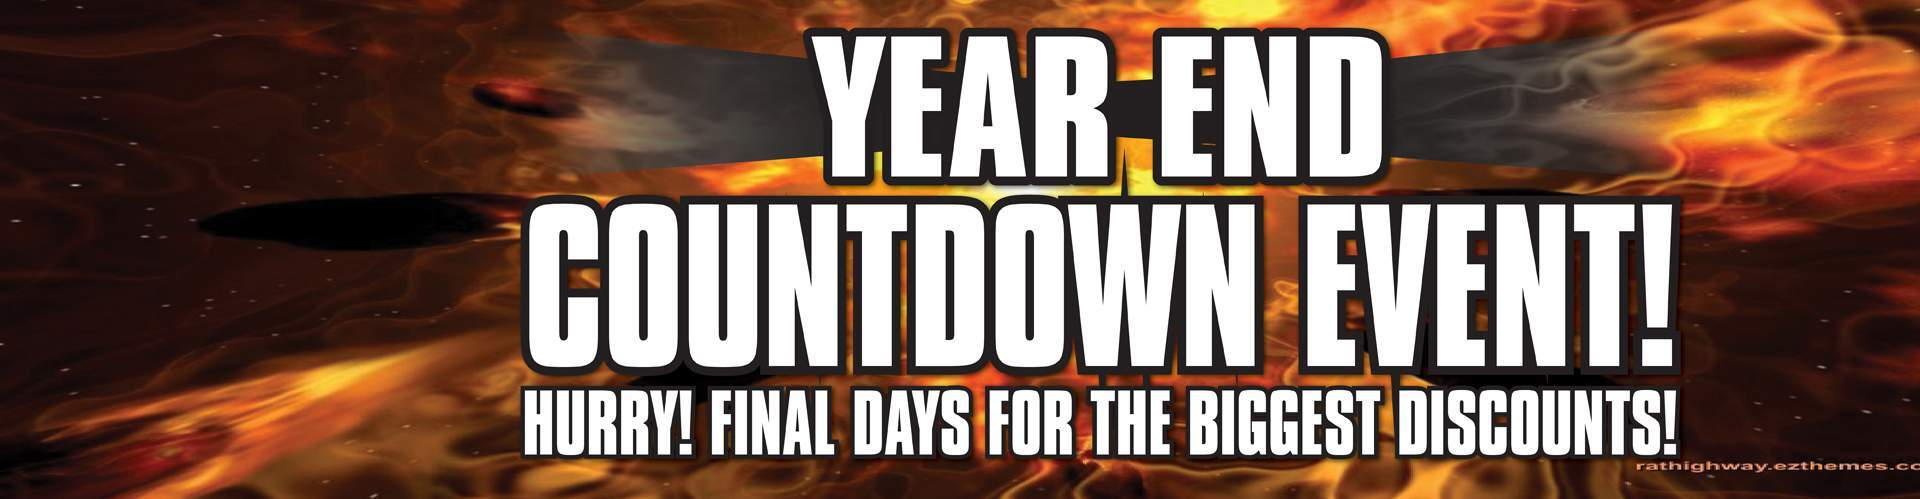 Year End Countdown Event!